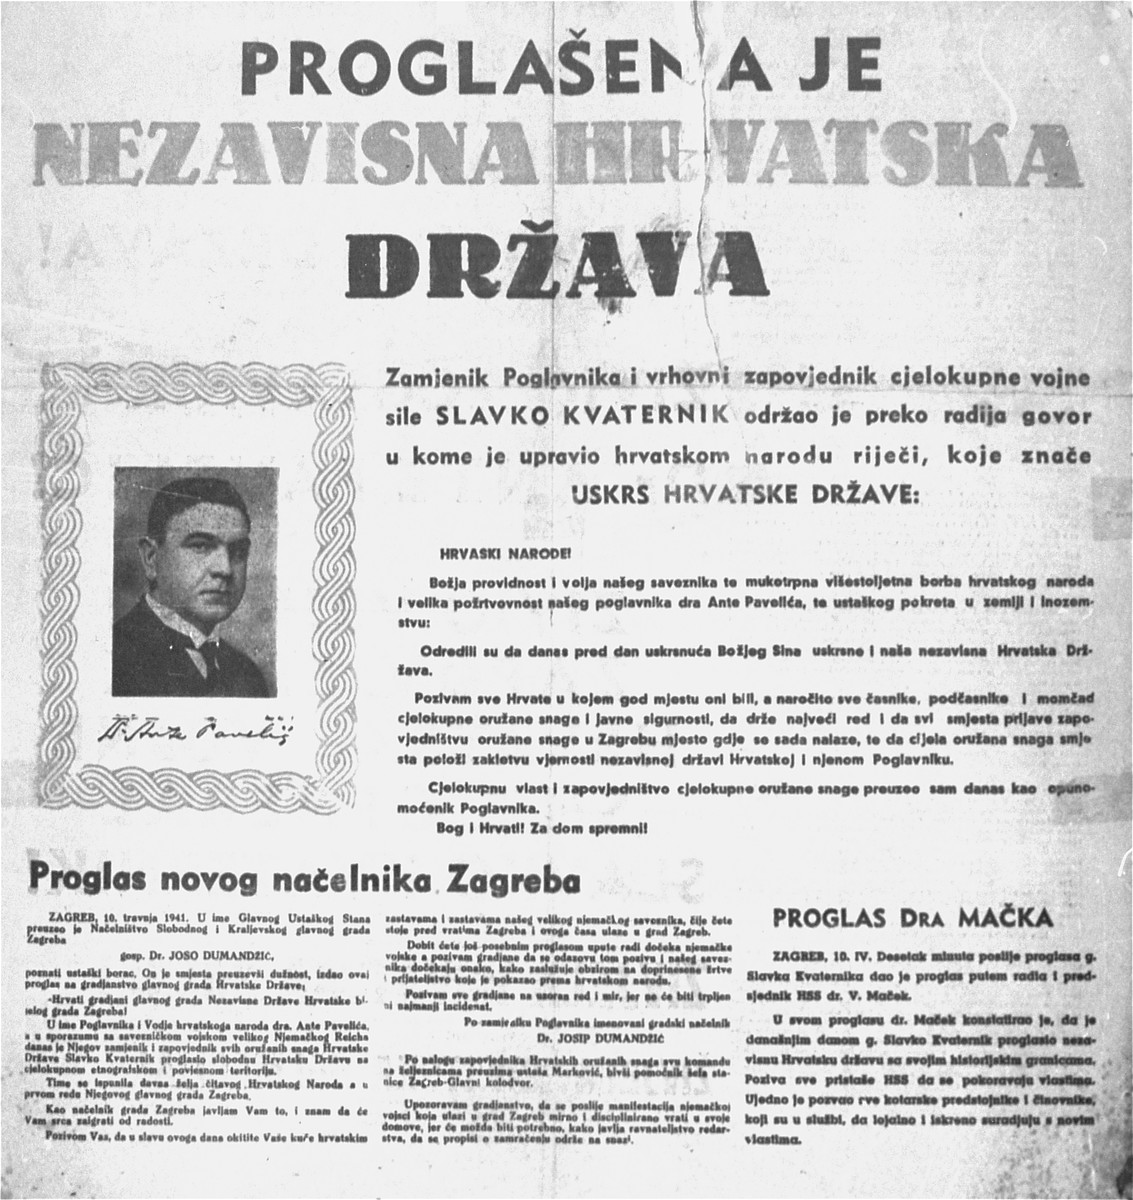 Official proclamation of the creation of an Independent Croatian State.    Pictured is Ante Pavelich, leader of the Ustasa movement and head of the new Croatian state.